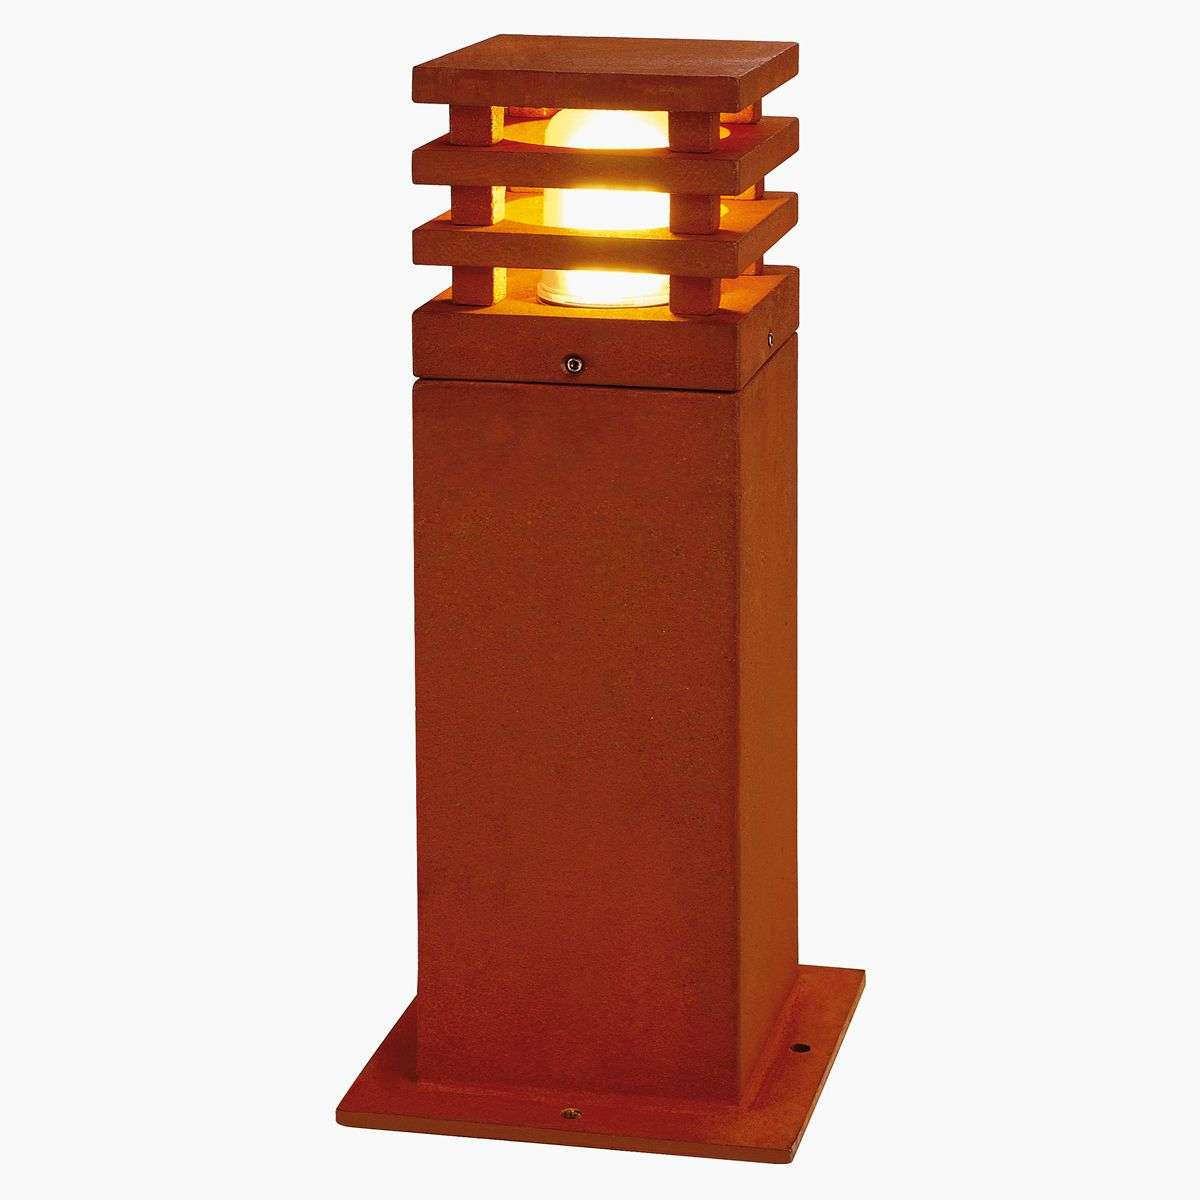 luminaire pour socle haut de gamme rusty square. Black Bedroom Furniture Sets. Home Design Ideas